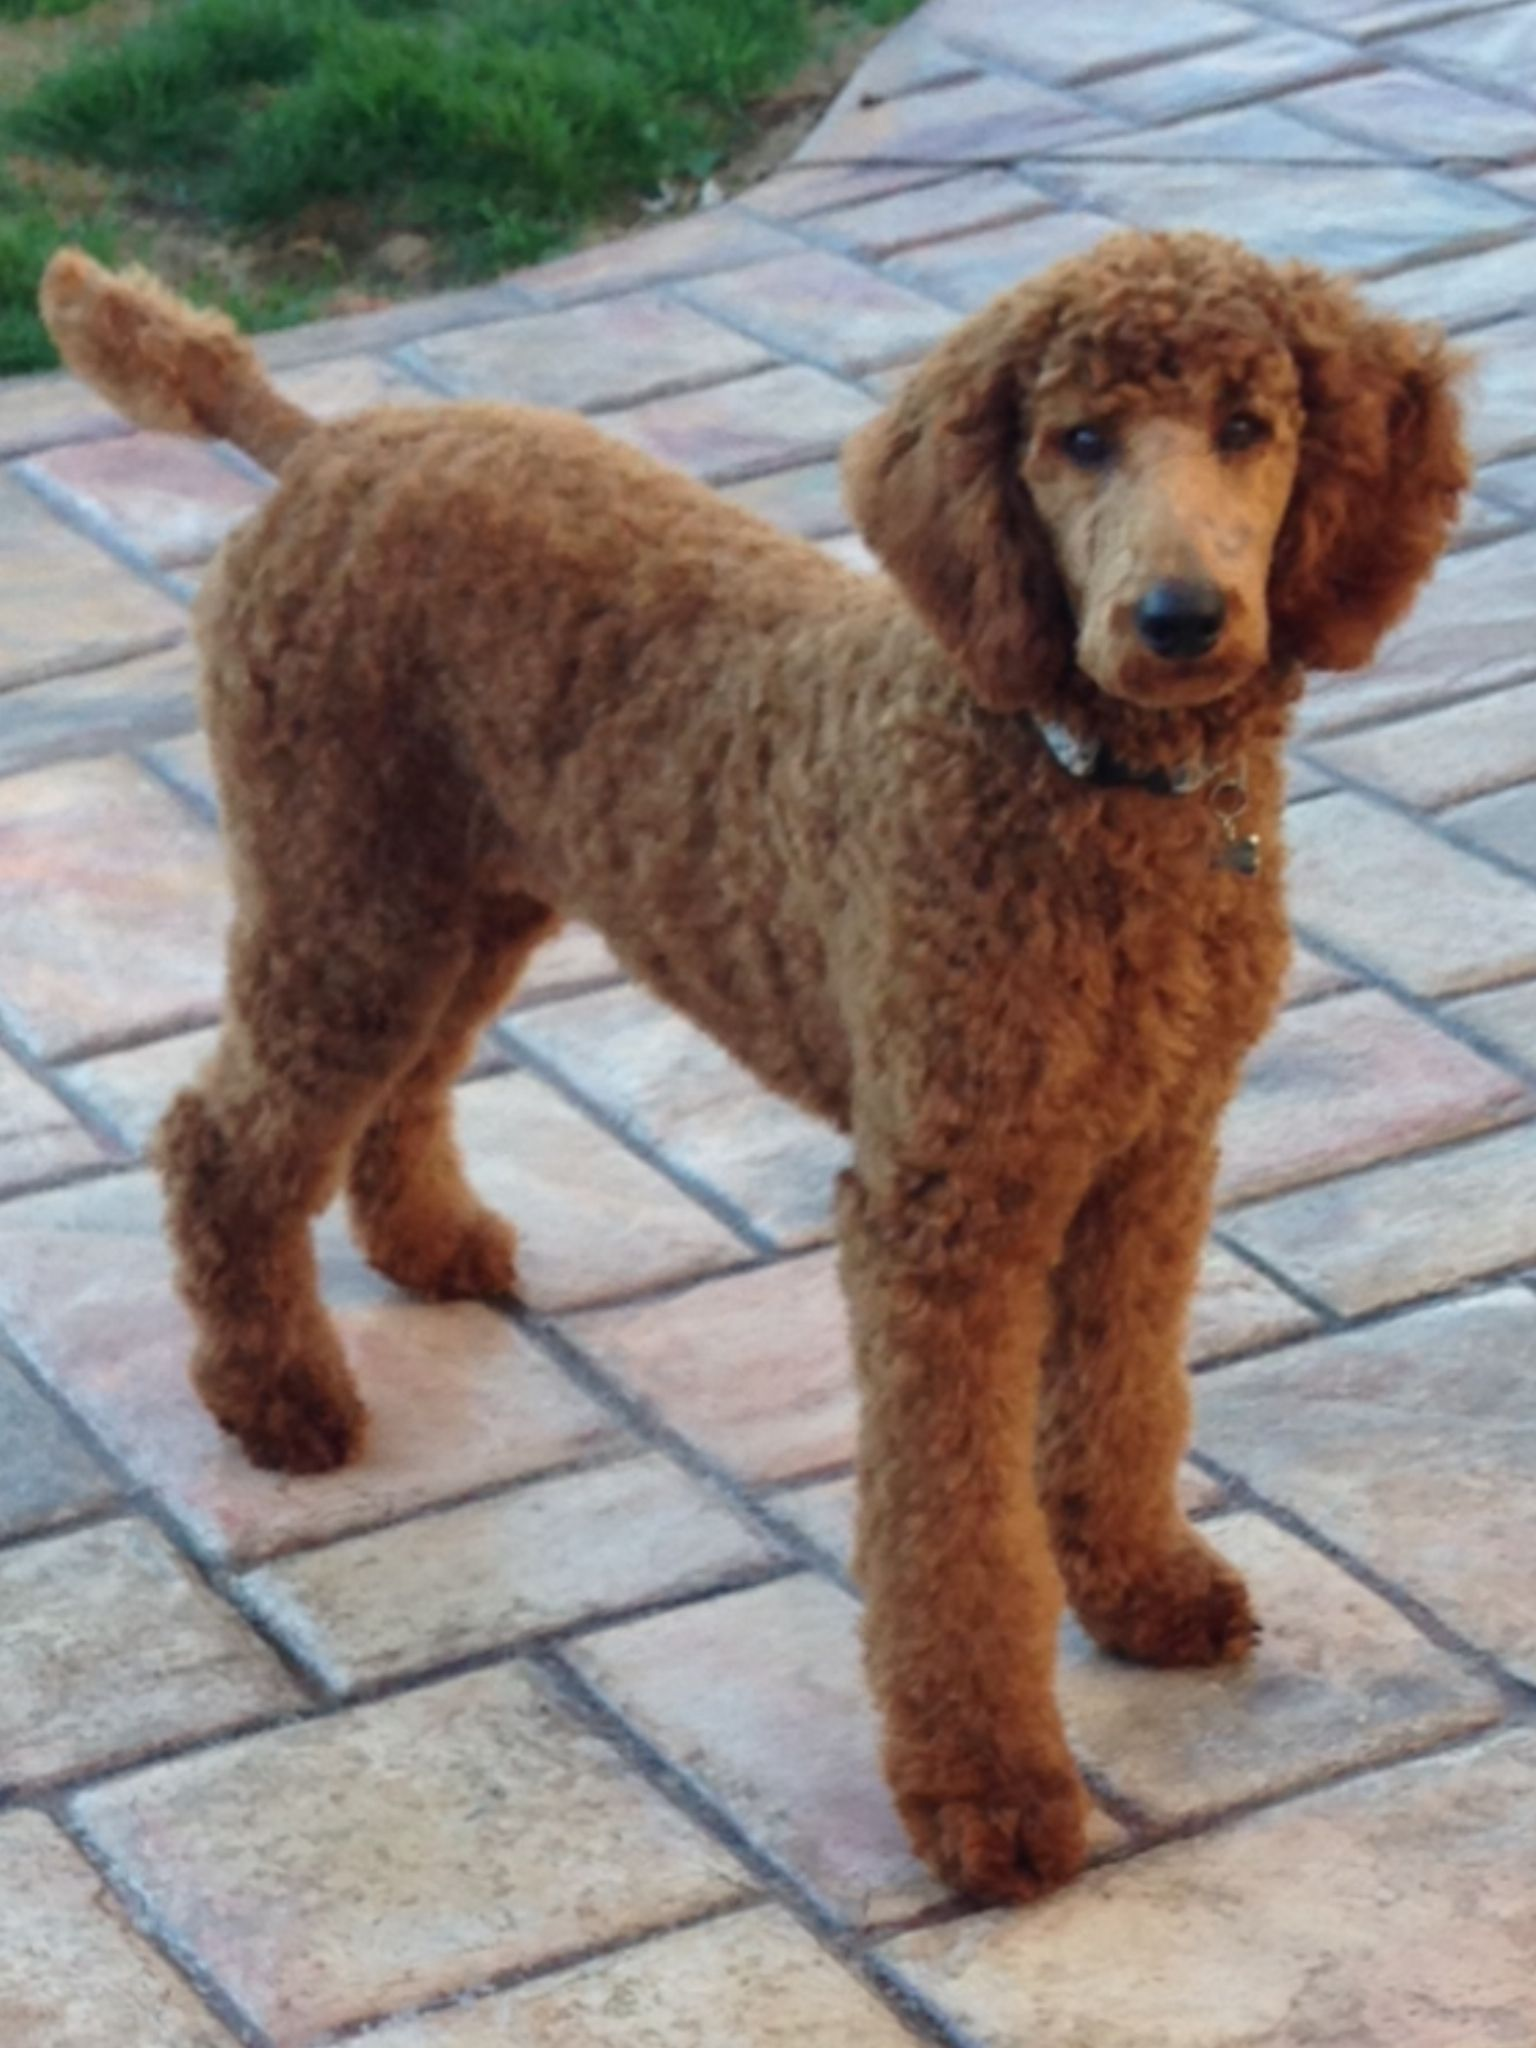 I Think Red Standard Poodles Are Stunning And Elegant On So Many Levels So Fortunate To Have Miss Shelby Poodle Pudel Welpen Niedliche Hunde Hunderassen